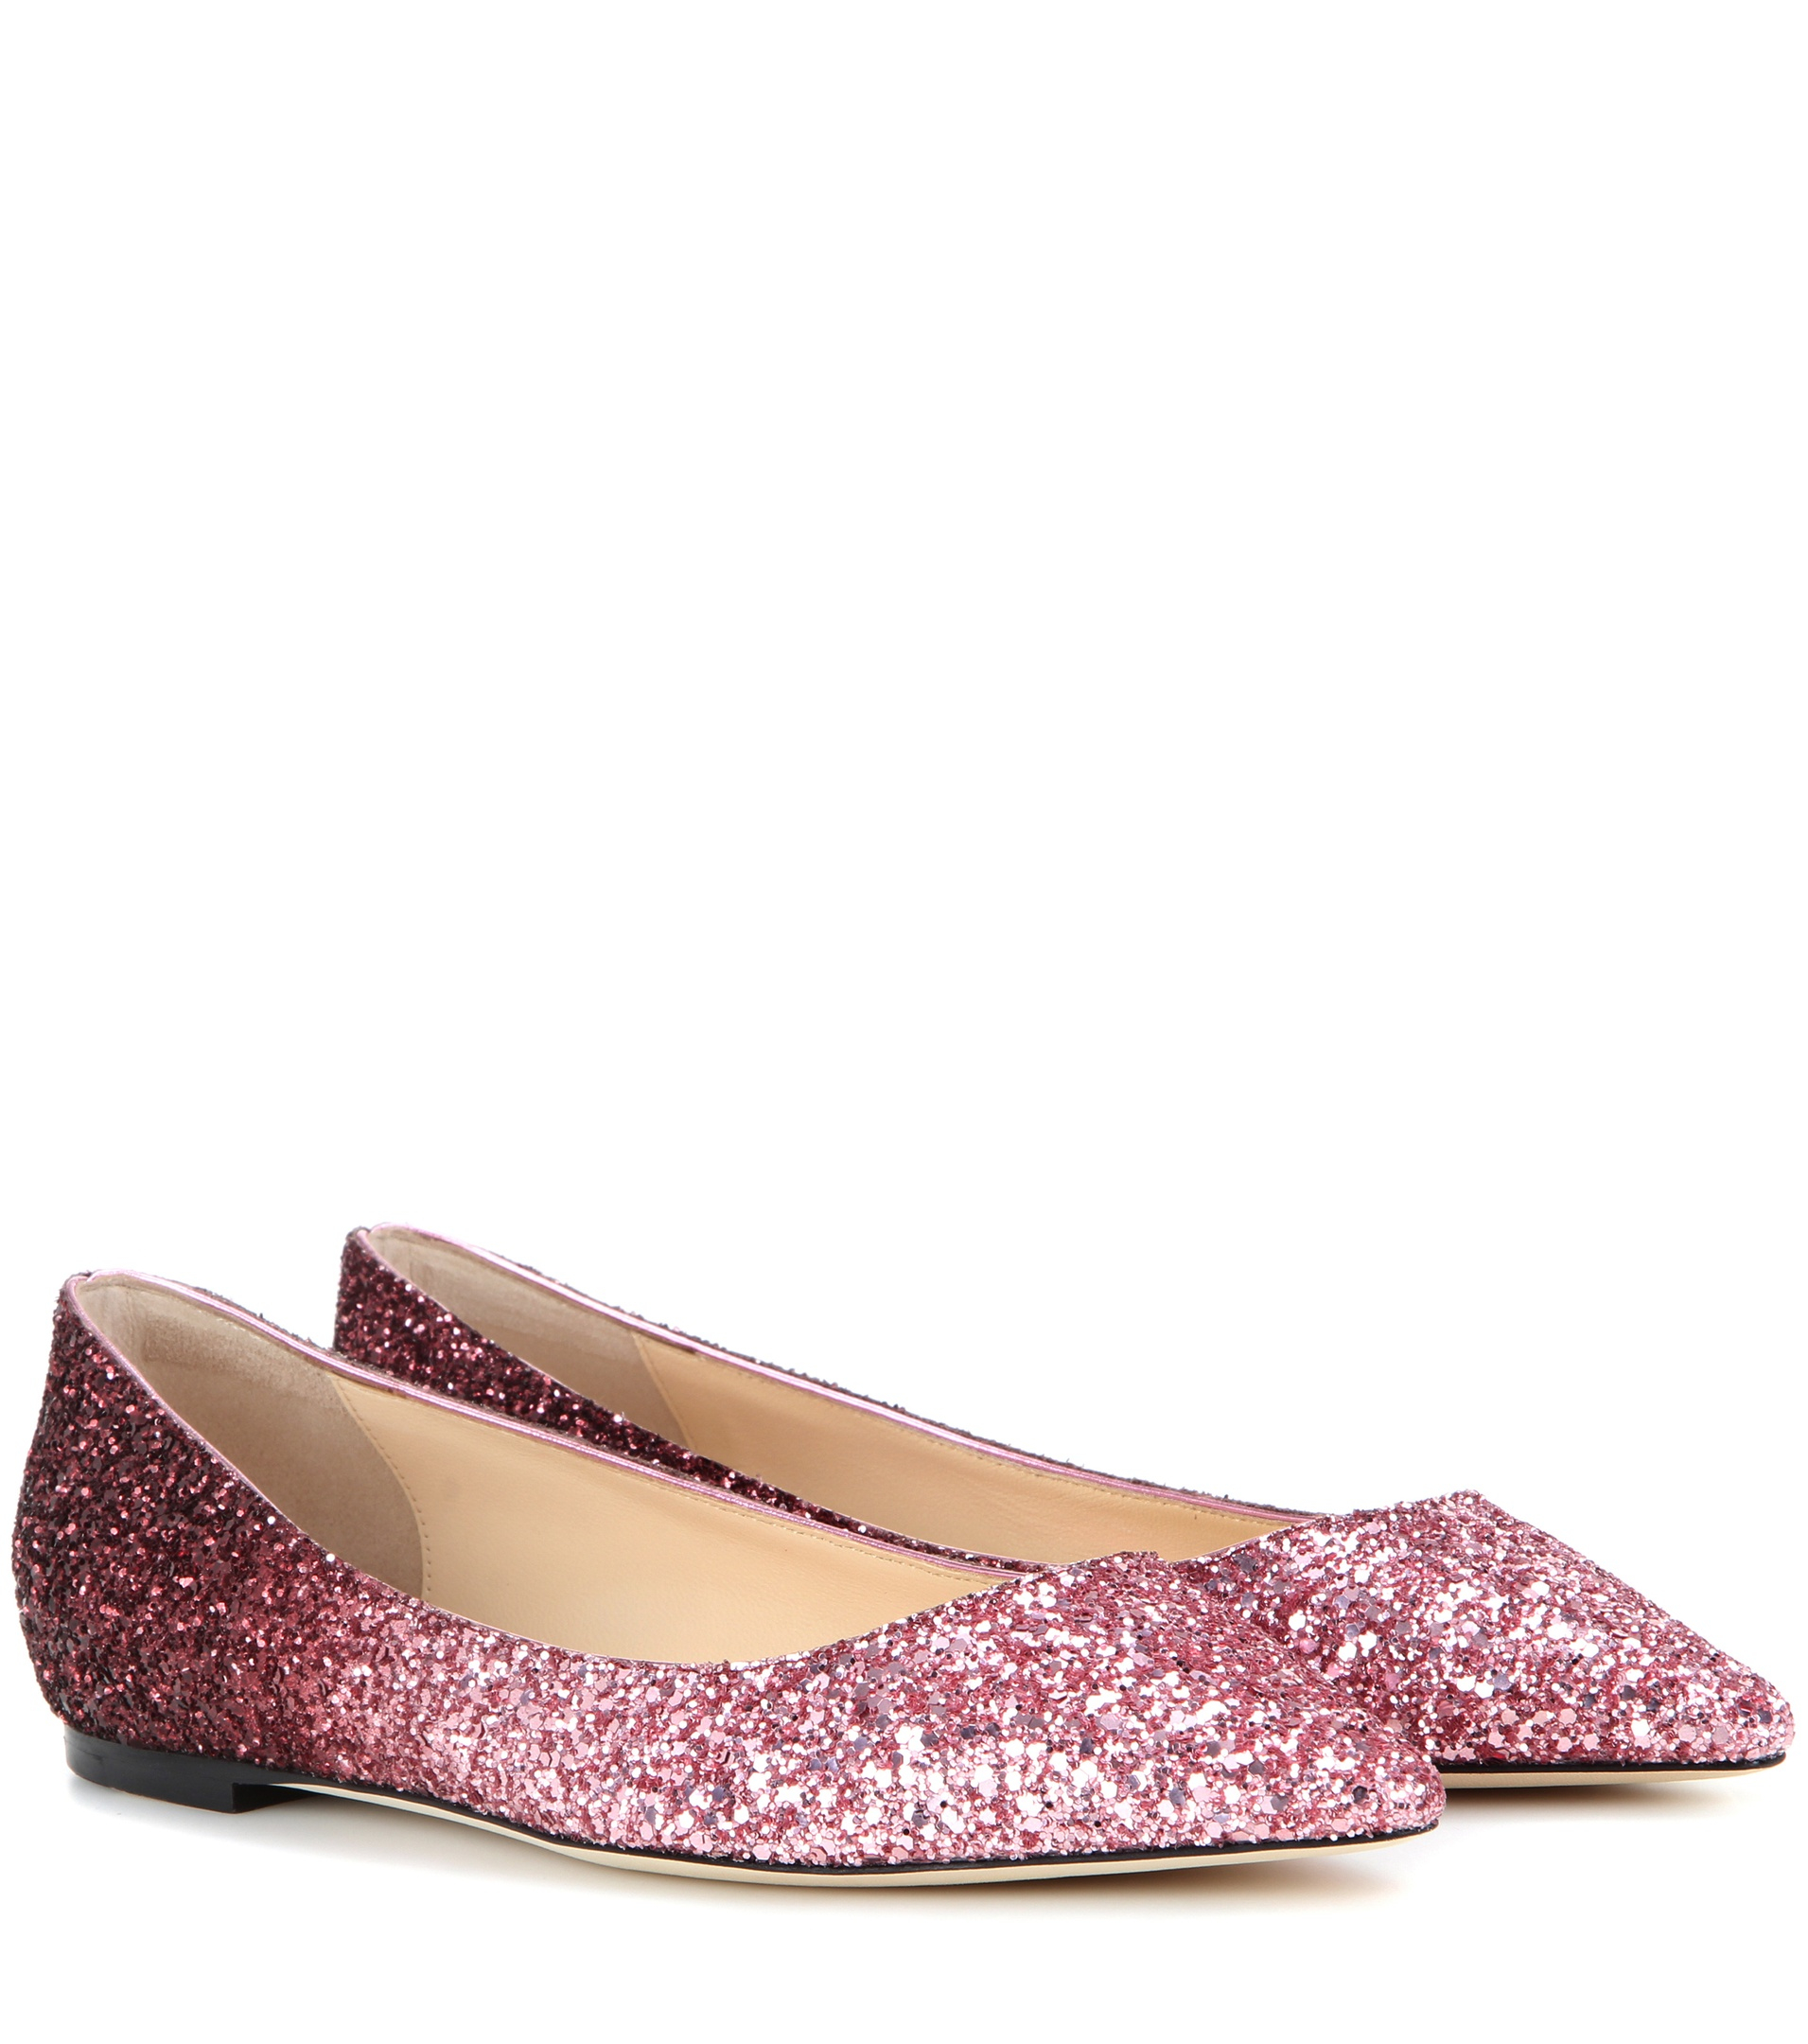 Jimmy Choo Romy Flat studded suede ballerinas buy cheap outlet 6TyQQR